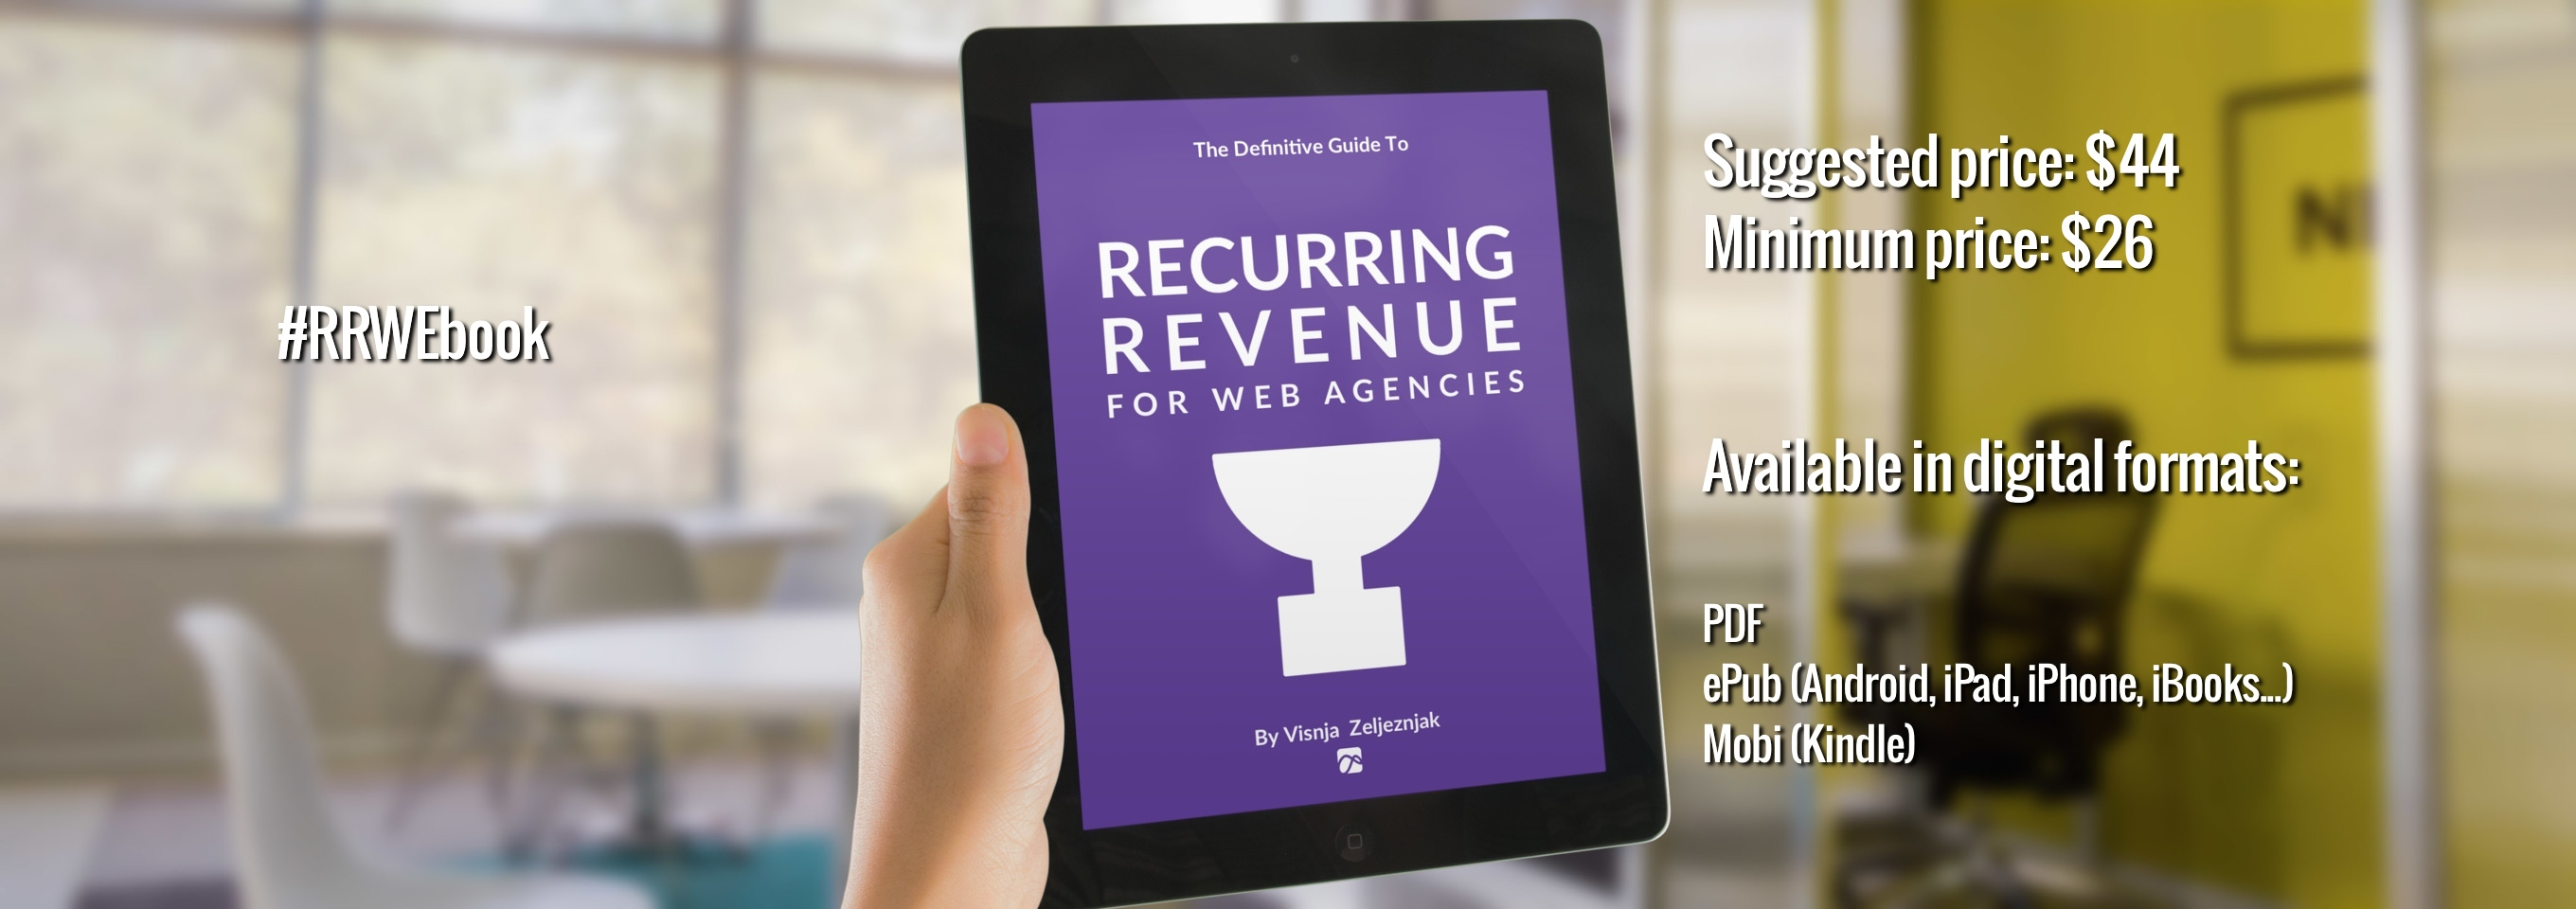 Recurring Revenue for Web Agencies: The Book